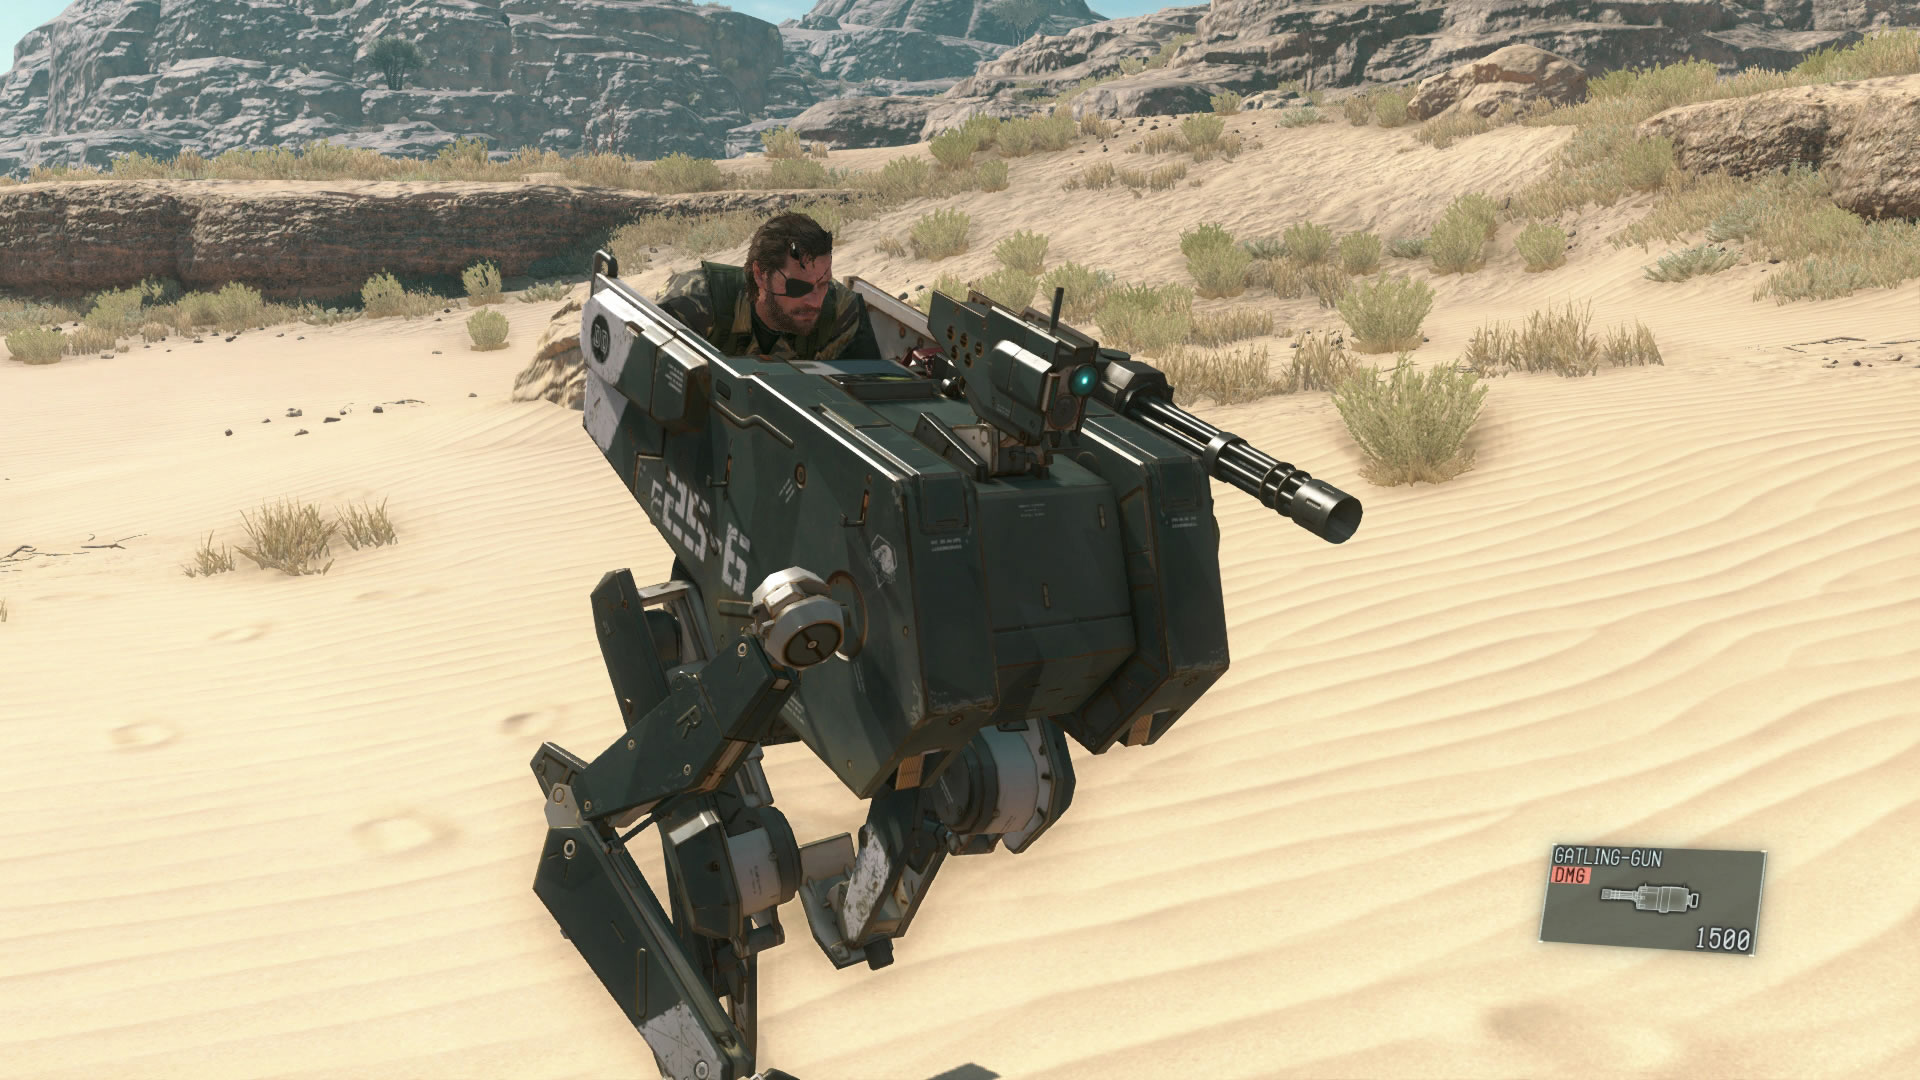 Metal-Gear-Solid-V-The-Phantom-Pain-E3-2015-Screen-Big-Boss-D-Walker-2